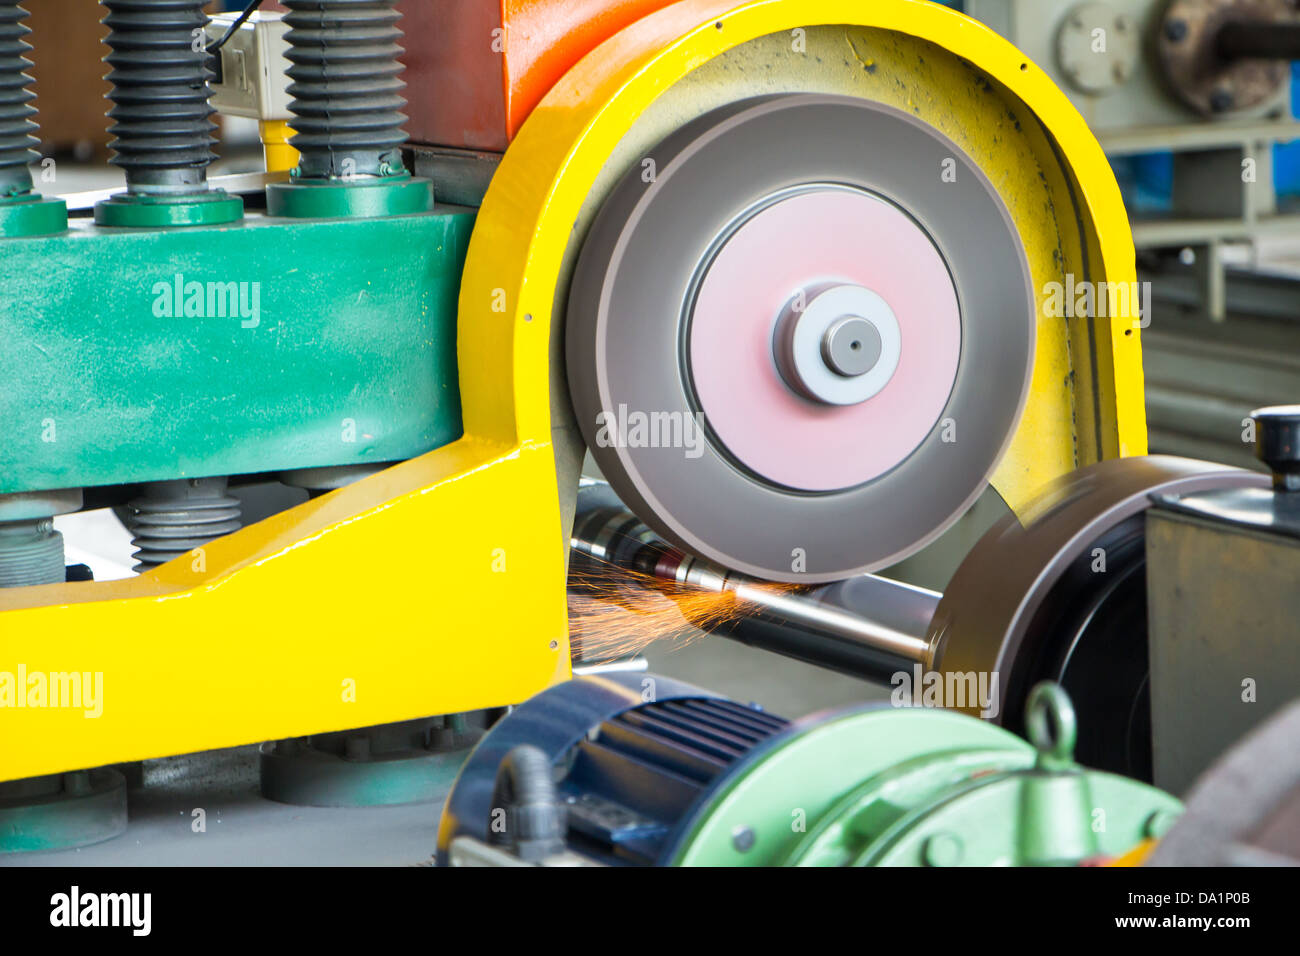 Emery in process in machinery workshop - Stock Image